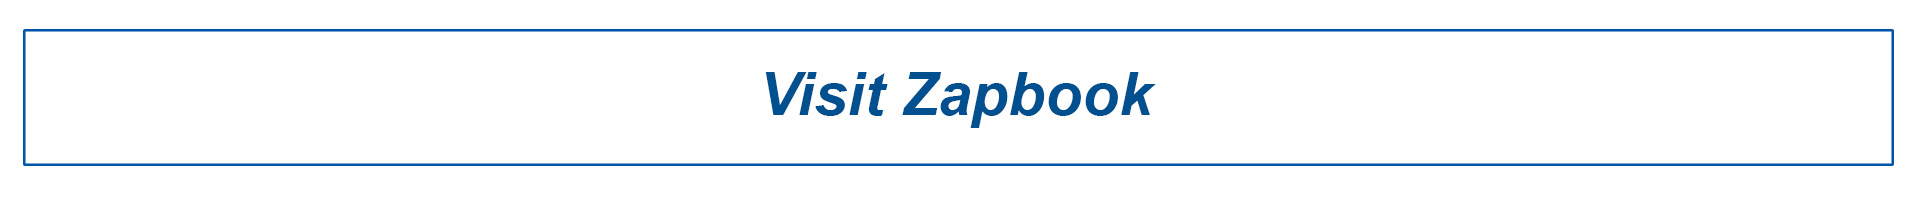 visit zap book